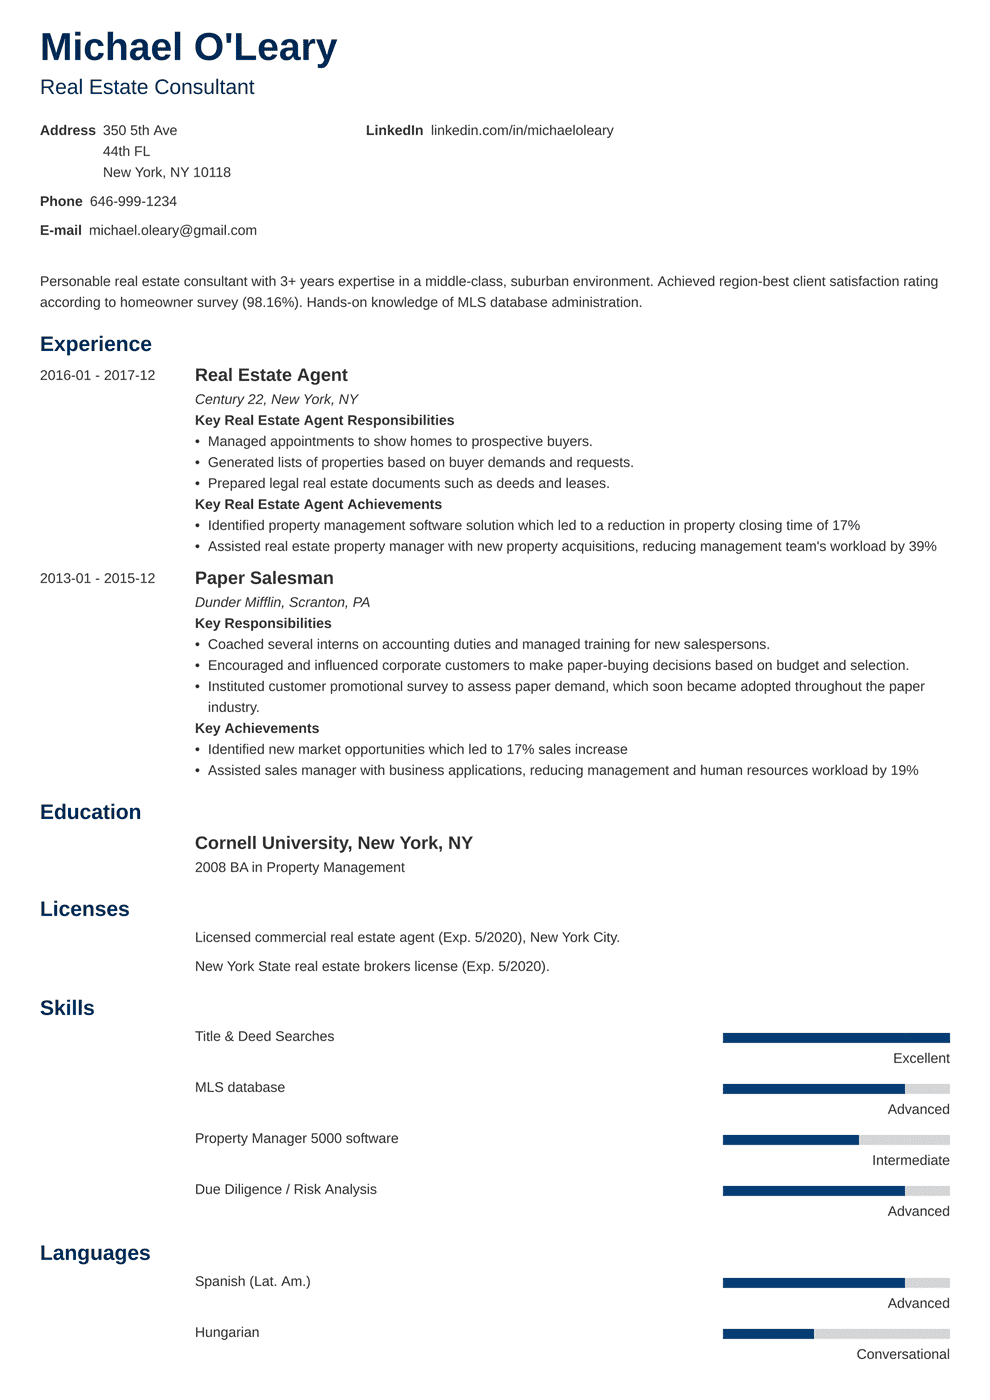 Real Estate Agent Resume Sample [Job Description & 20 Tips]